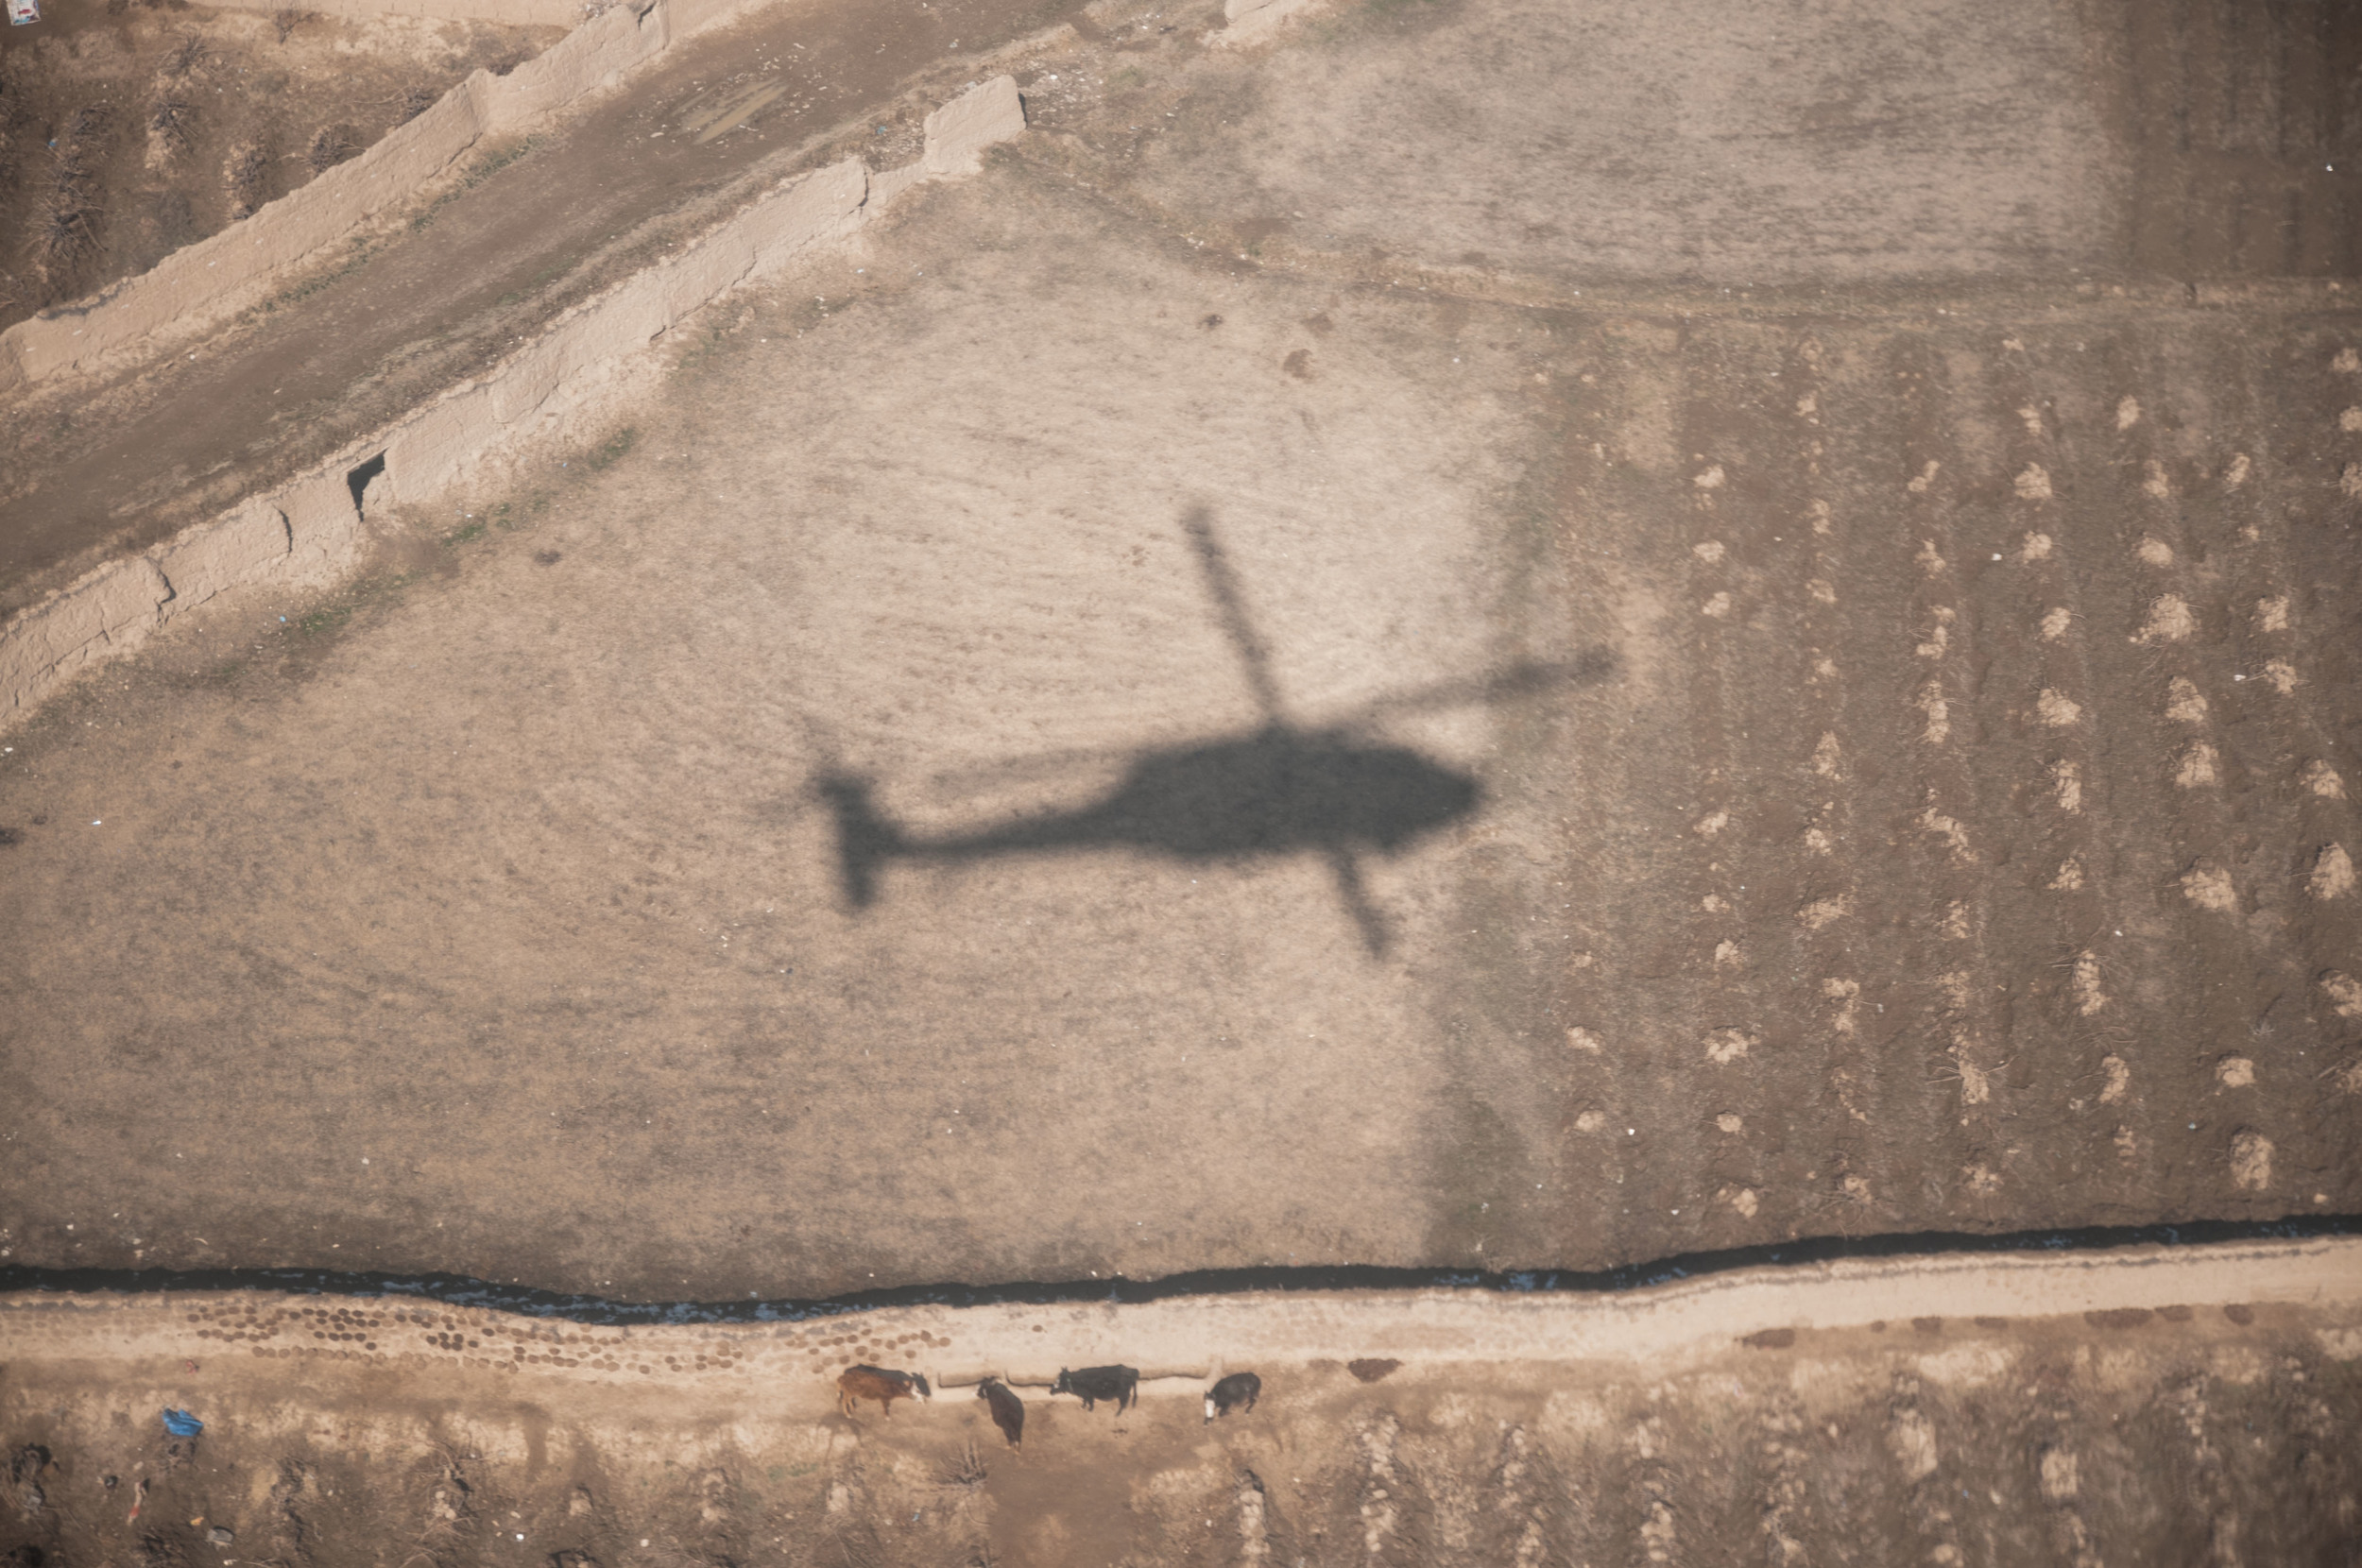 The UH-60 Blackhawk made by Sikorsky has never looked so good, that even its own shadow portrays awesomeness.     COWS!